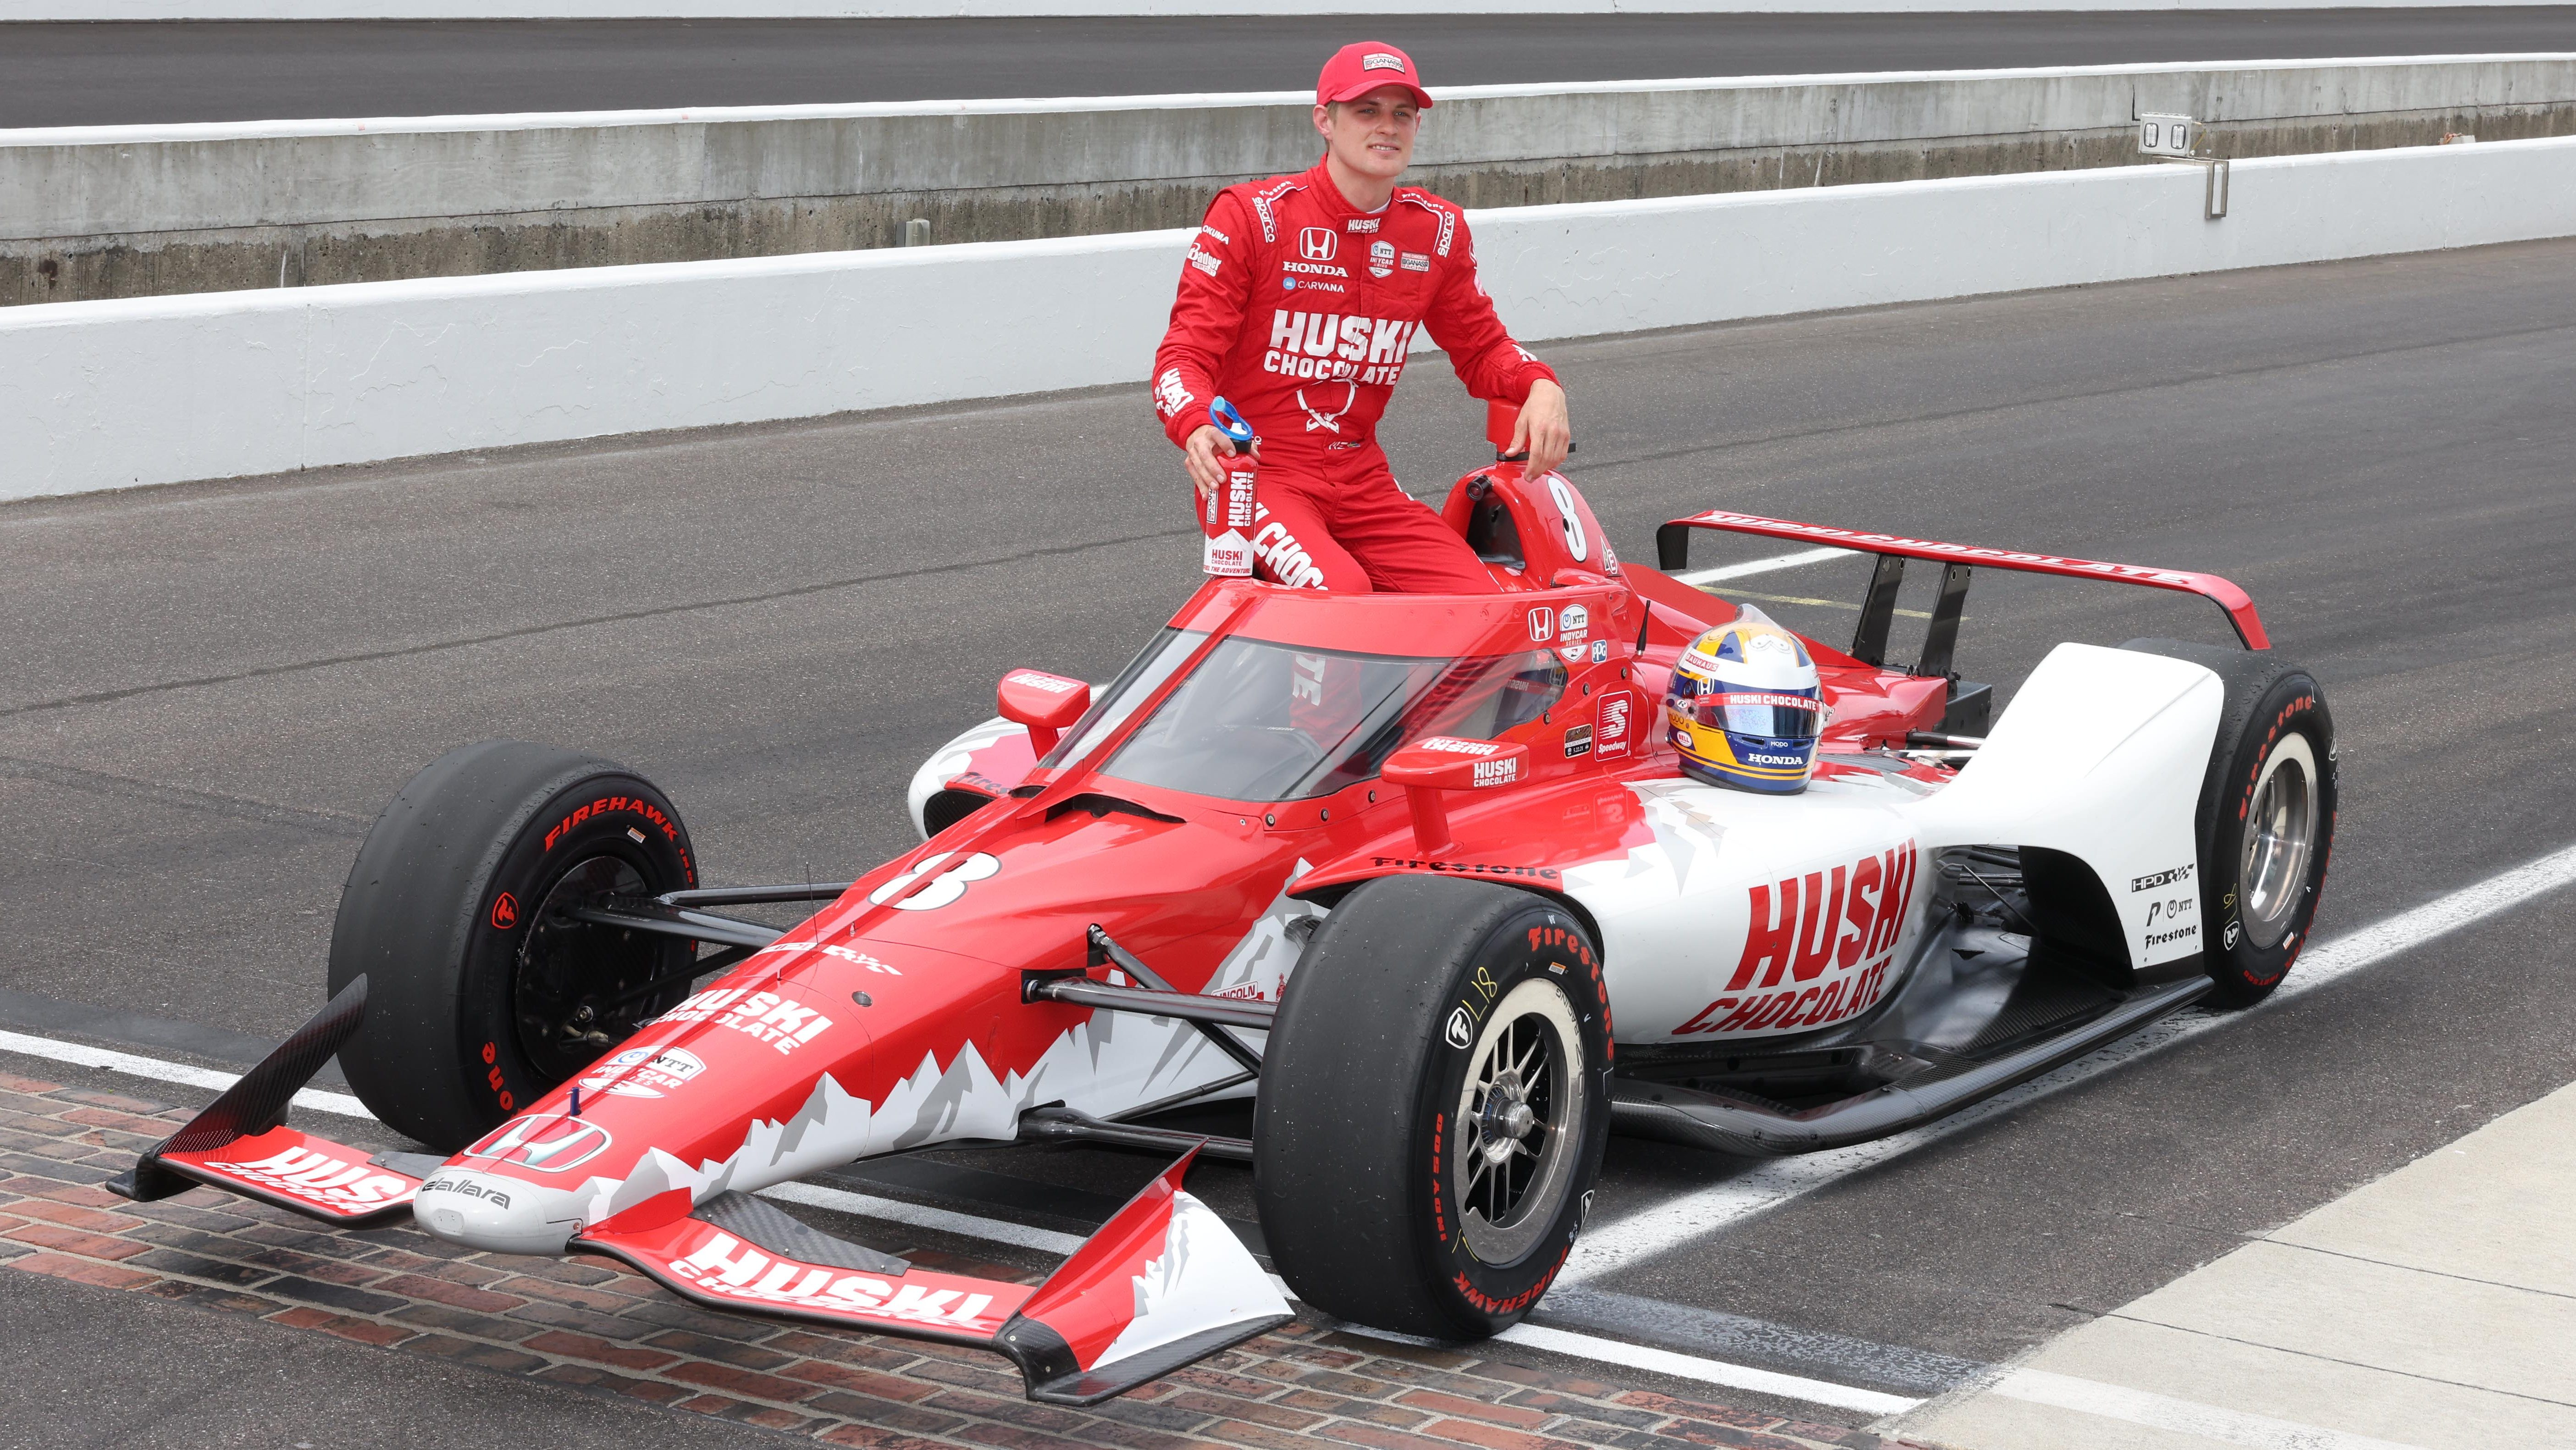 AUTO: MAY 22 INDYCAR - The 105th Indianapolis 500 Qualifying